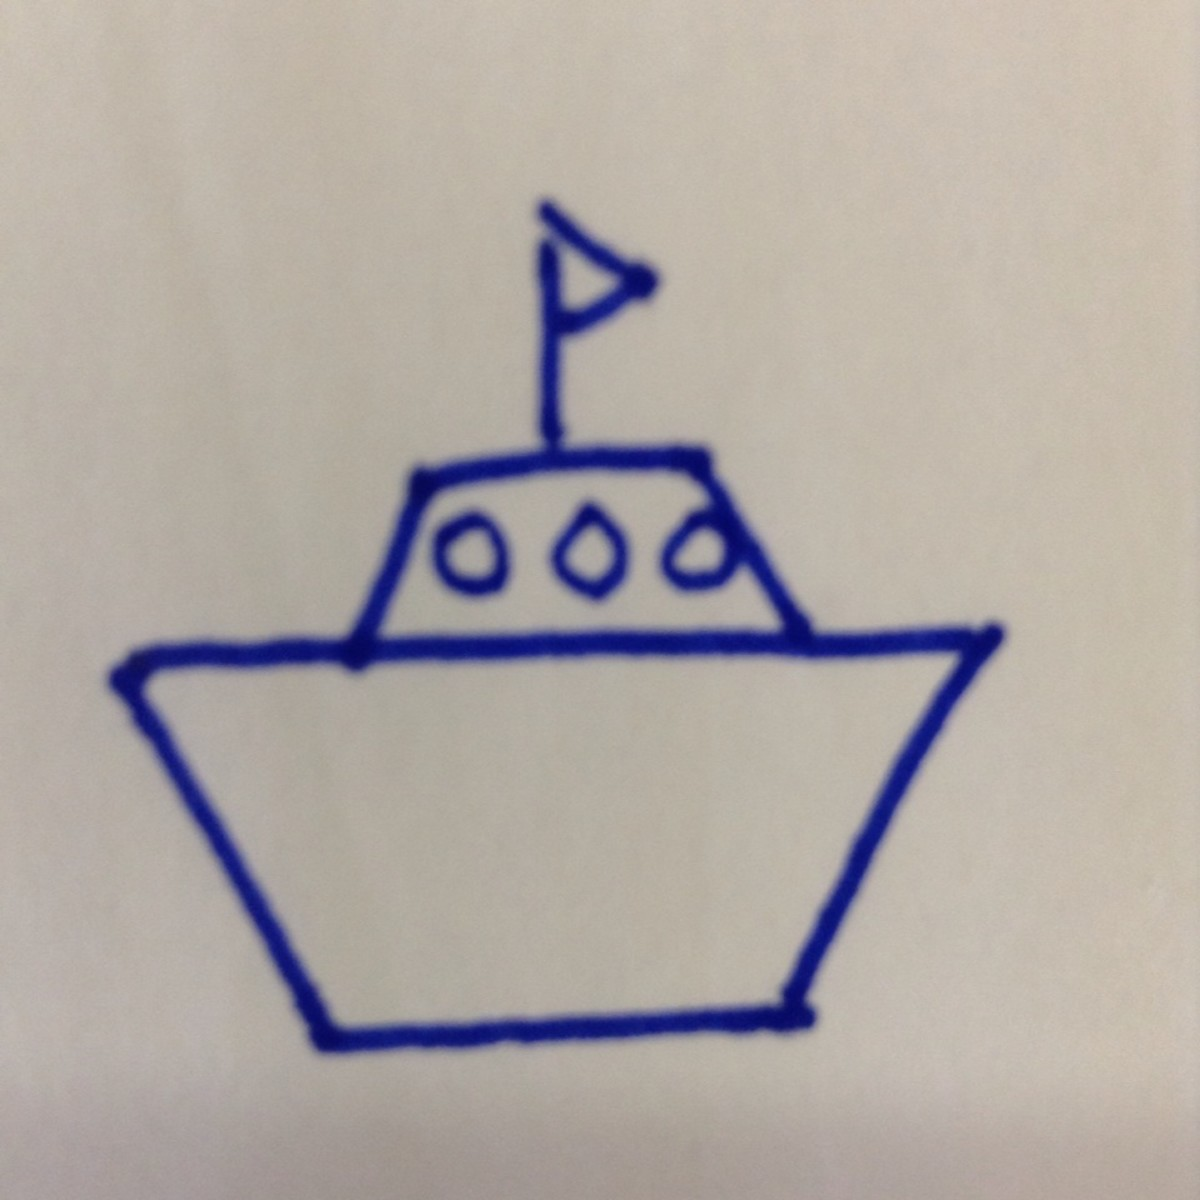 How to draw a boat using shapes.